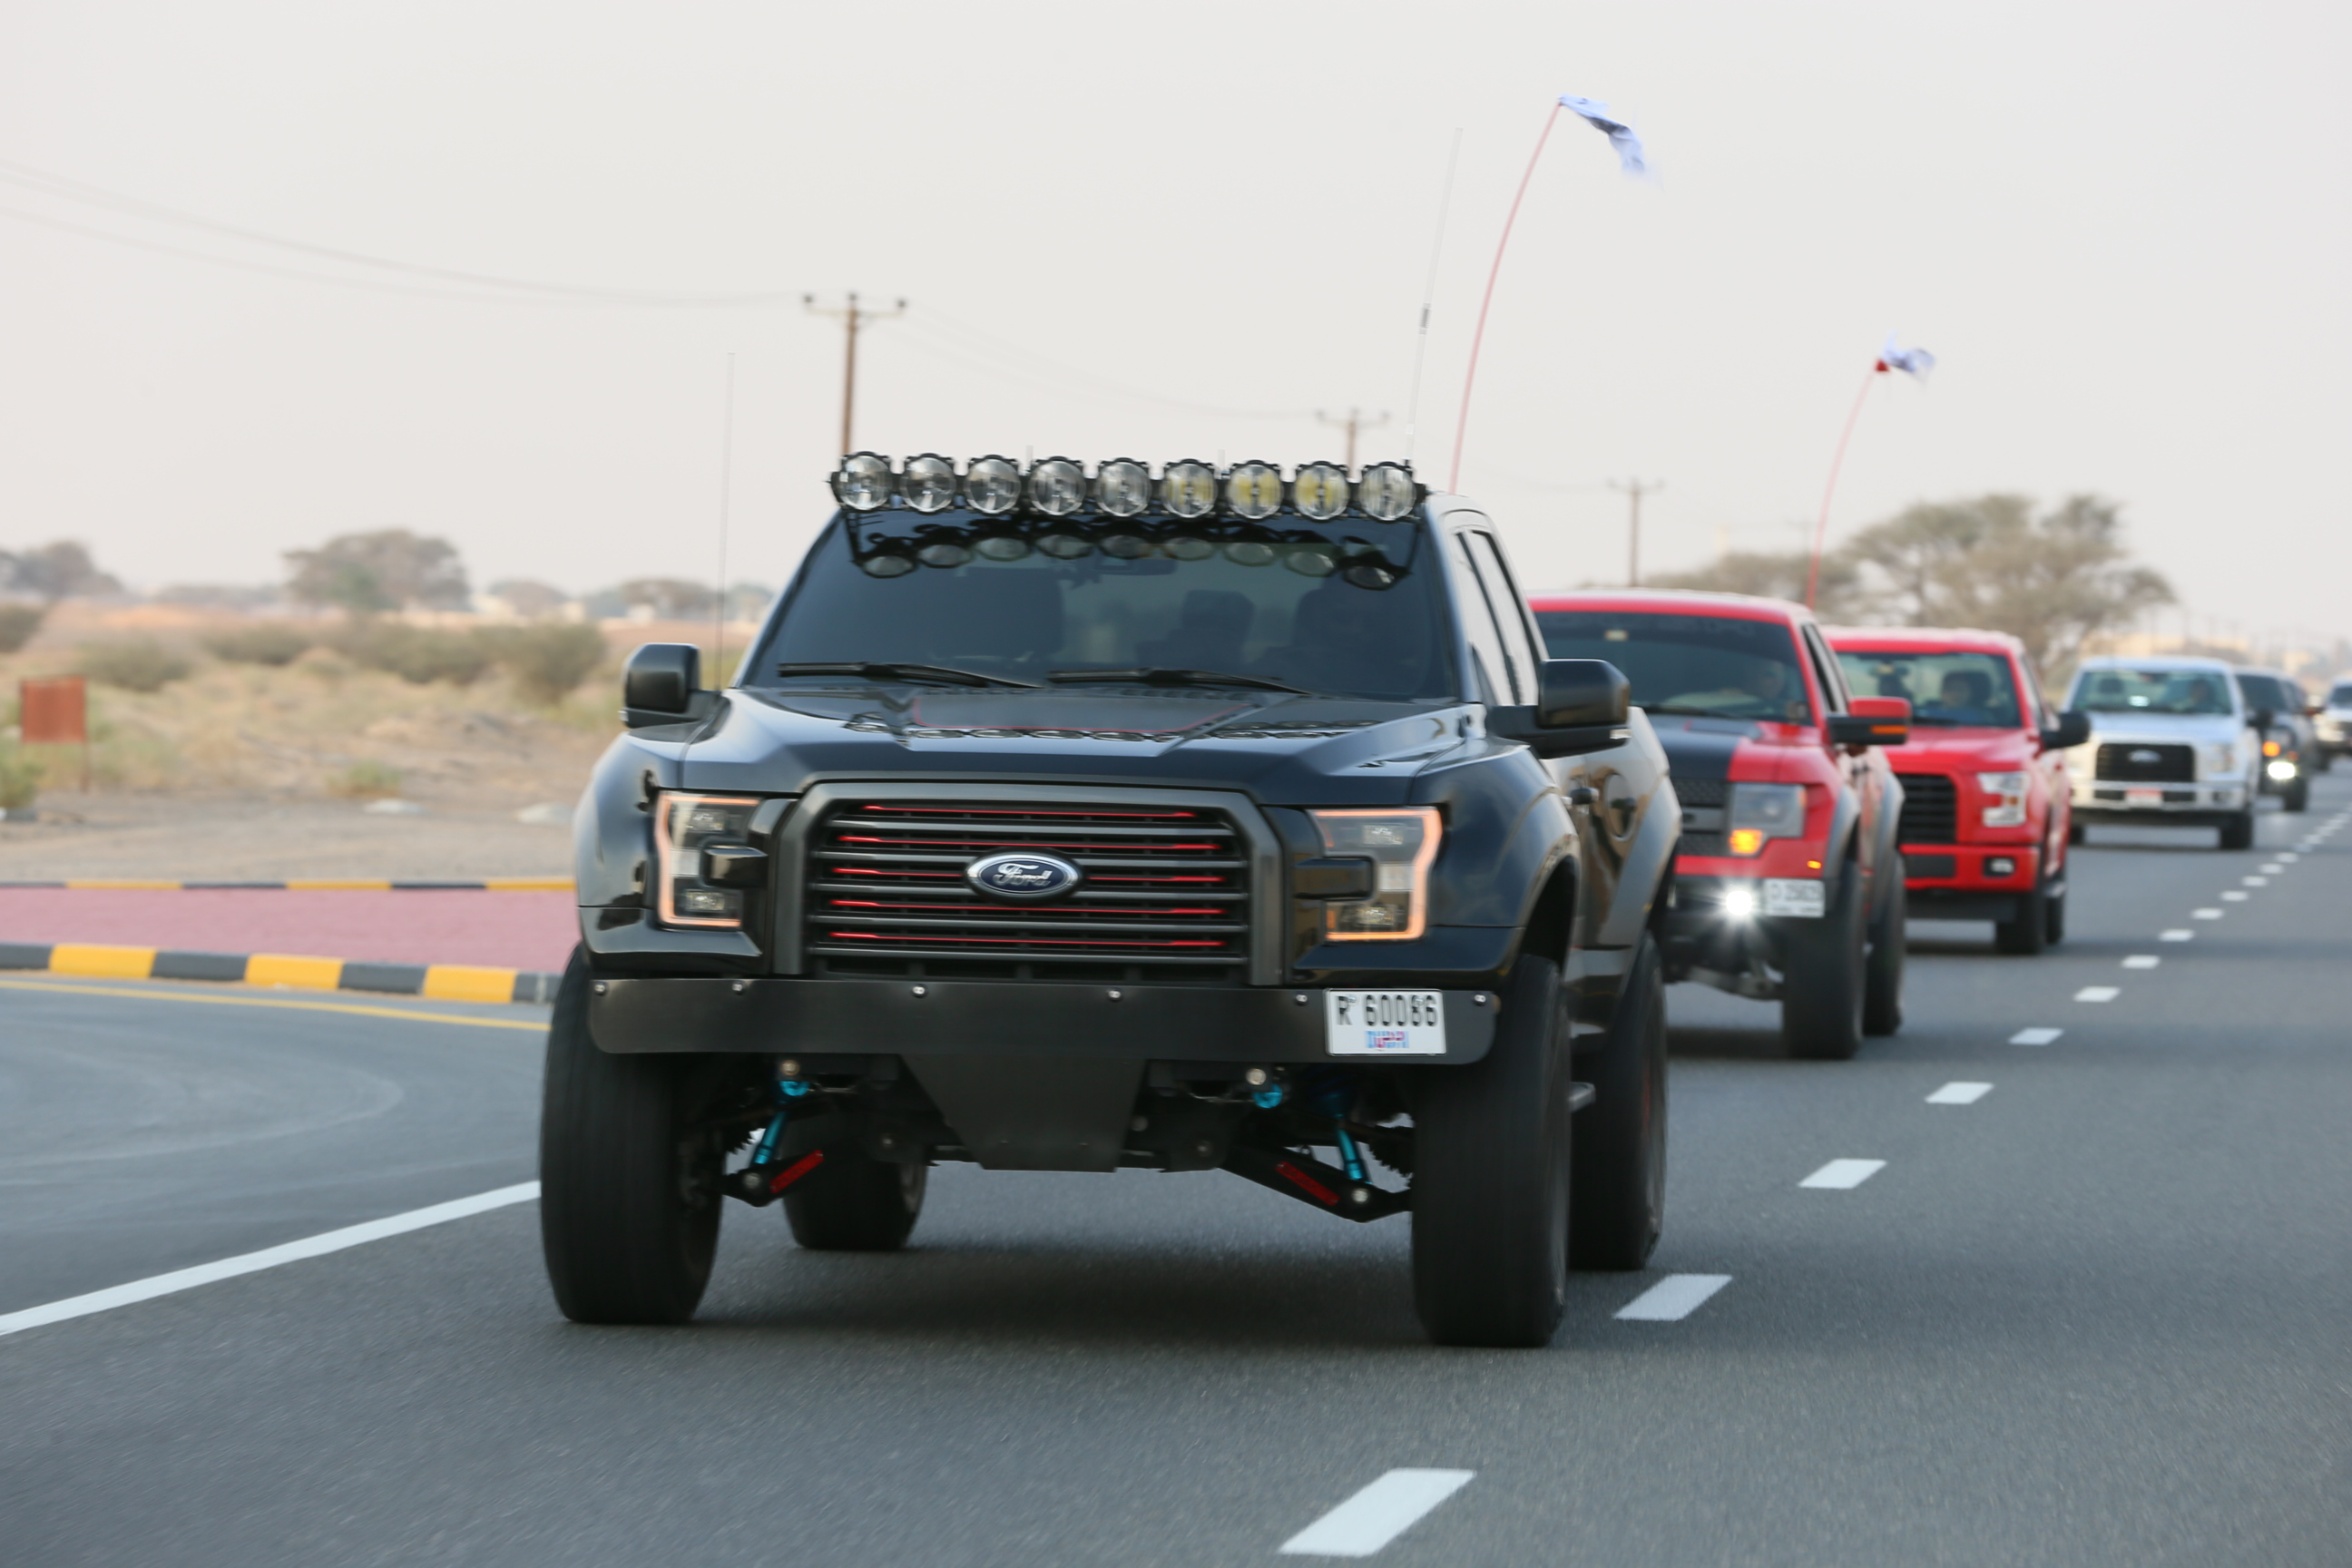 The event began from the Al Tayer Motors Ford showroom on Sheikh Mohammed Bin Zayed Road in Sharjah. Participants were in for a treat as they were able to ...